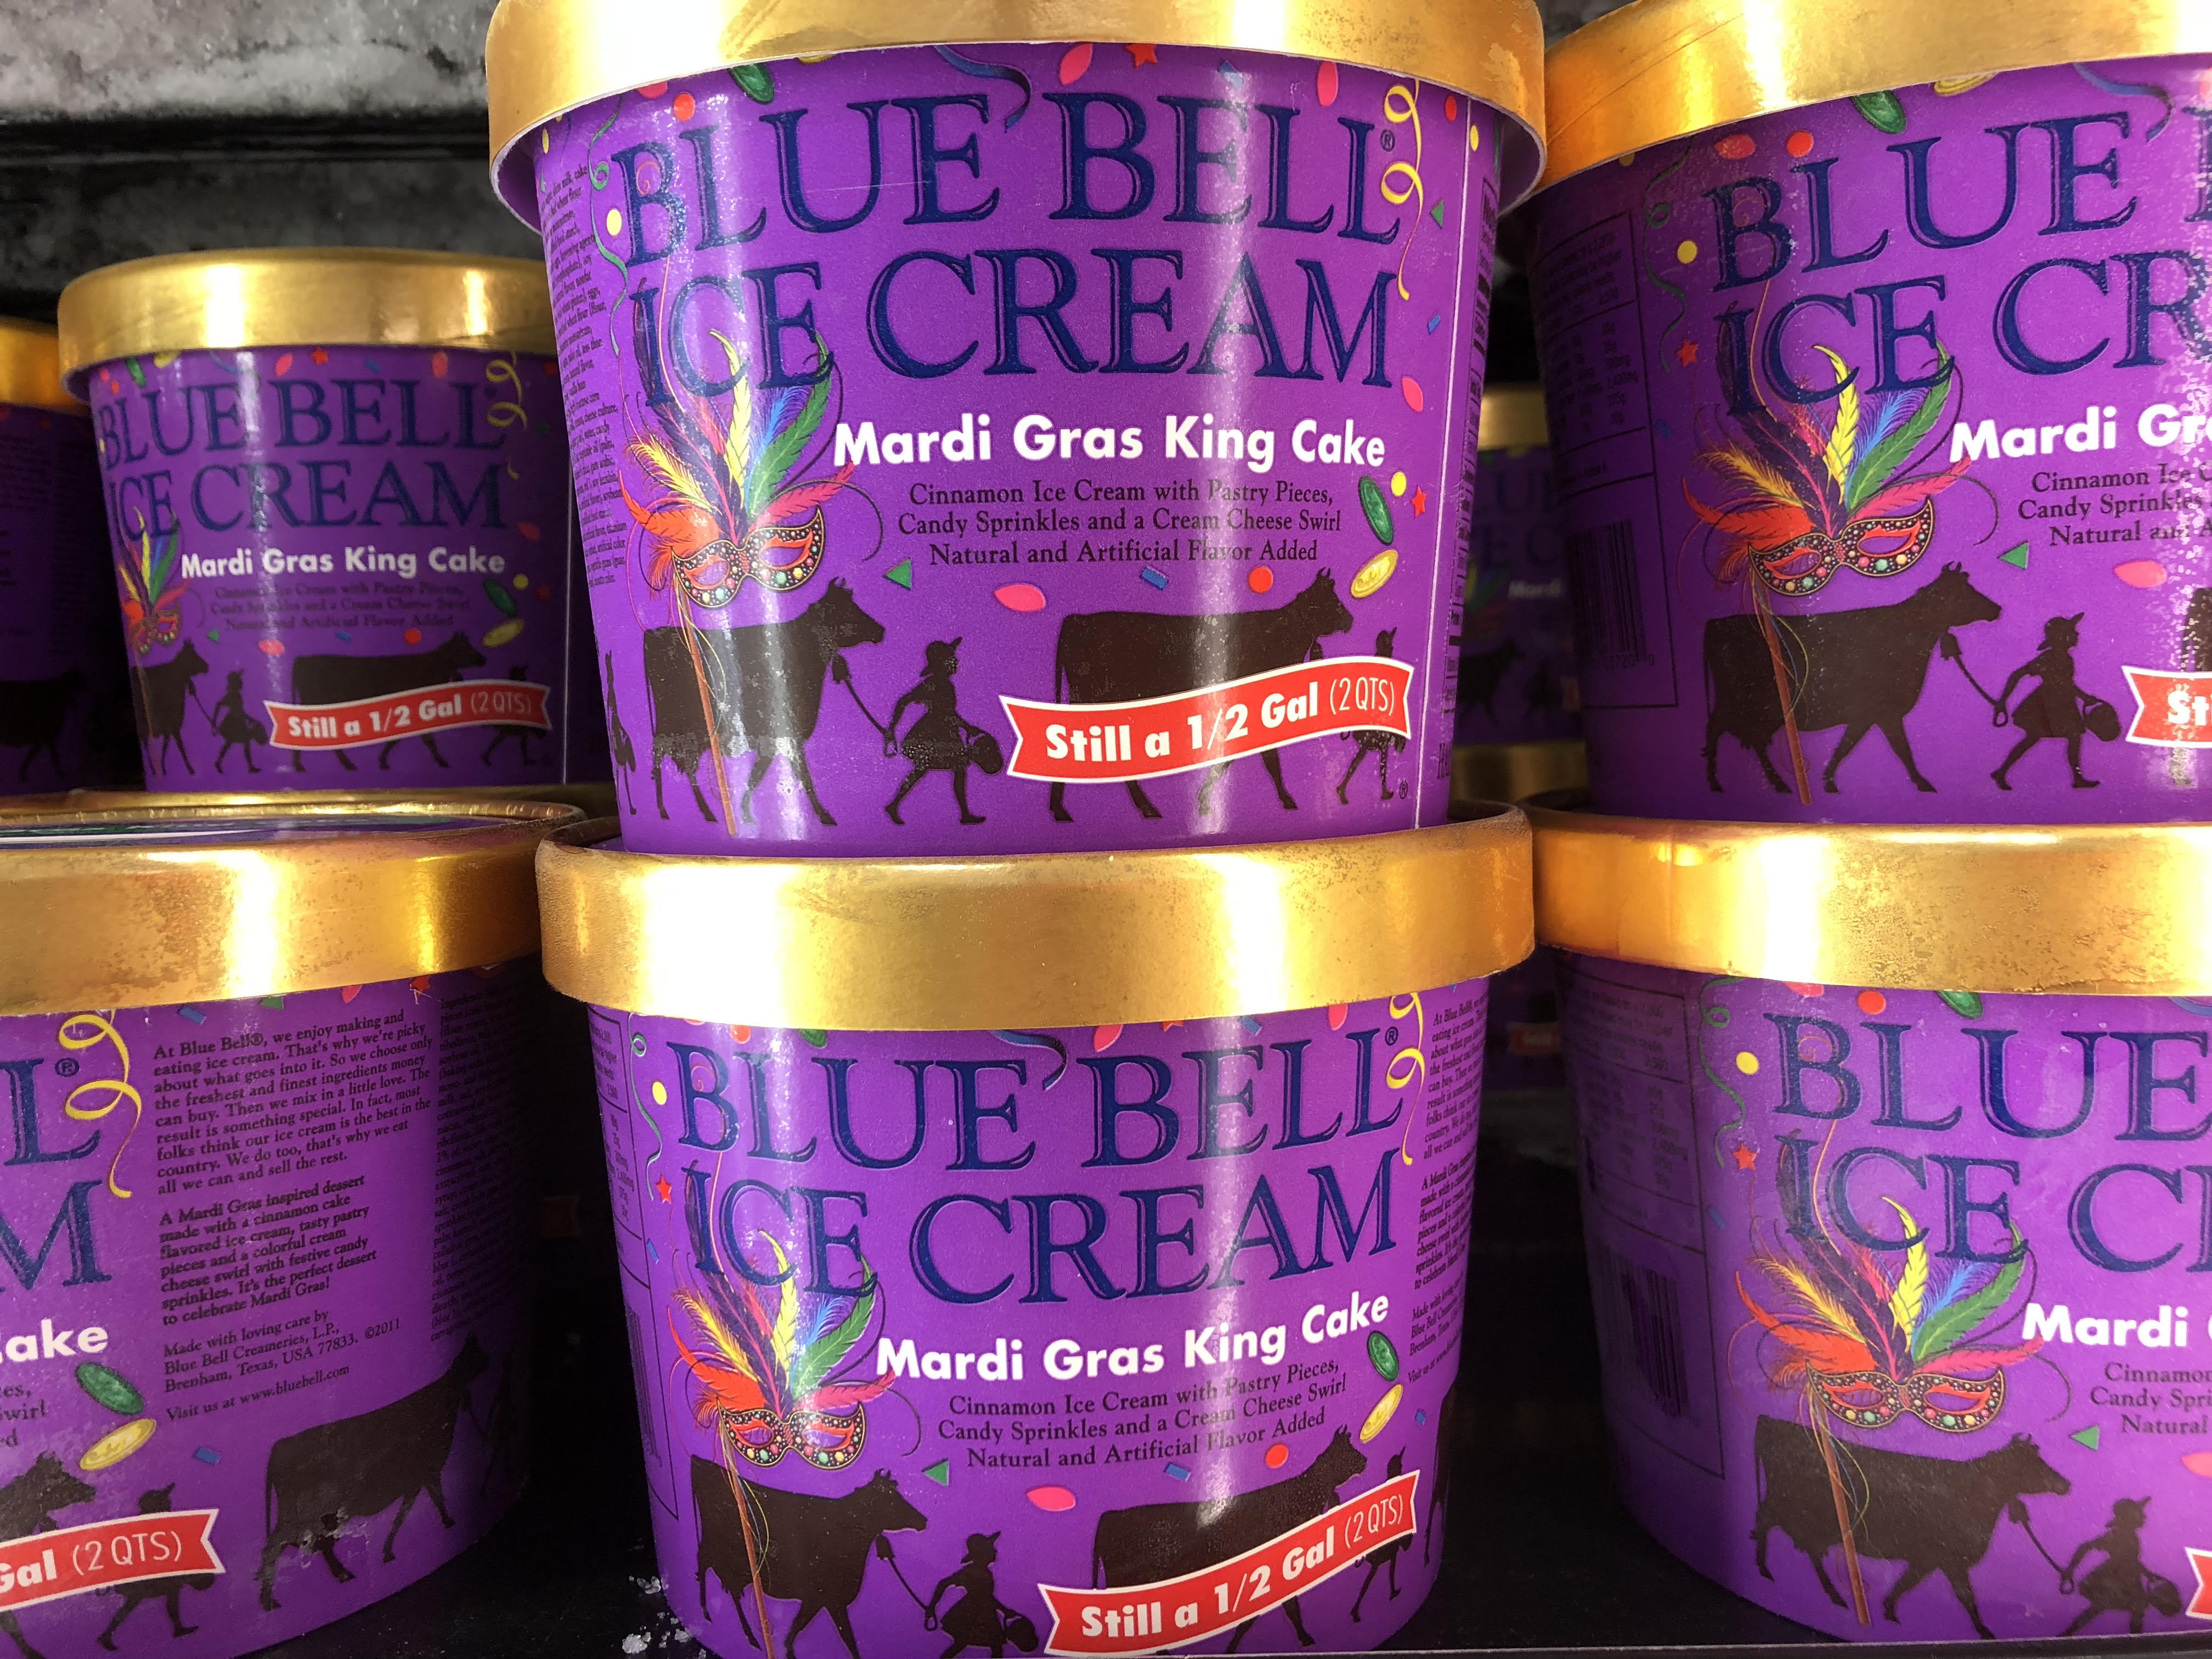 Blue Bell S Mardi Gras King Cake Ice Cream Will Be Available In